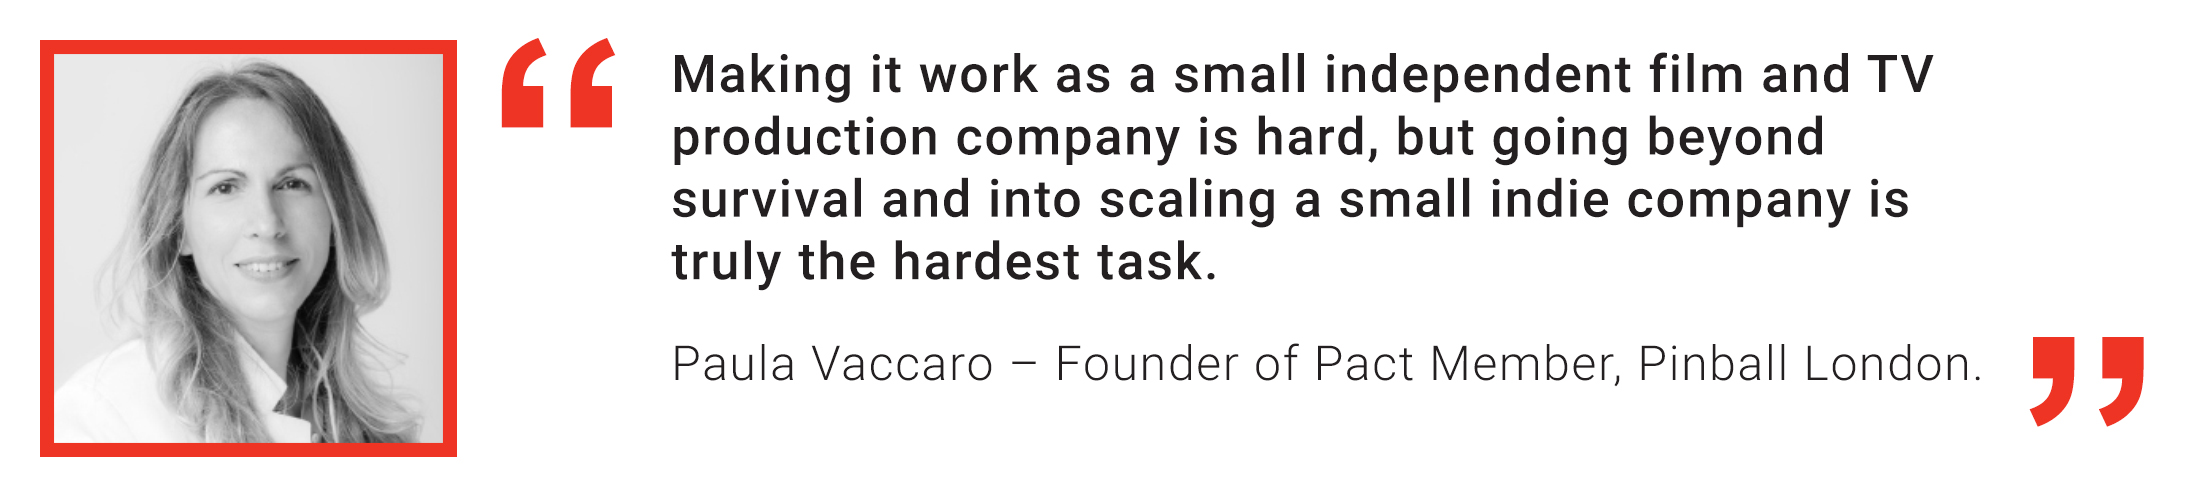 Pact Member Quote: Paula Vaccaro, Pinball London on the challenges of scaling an indie business.